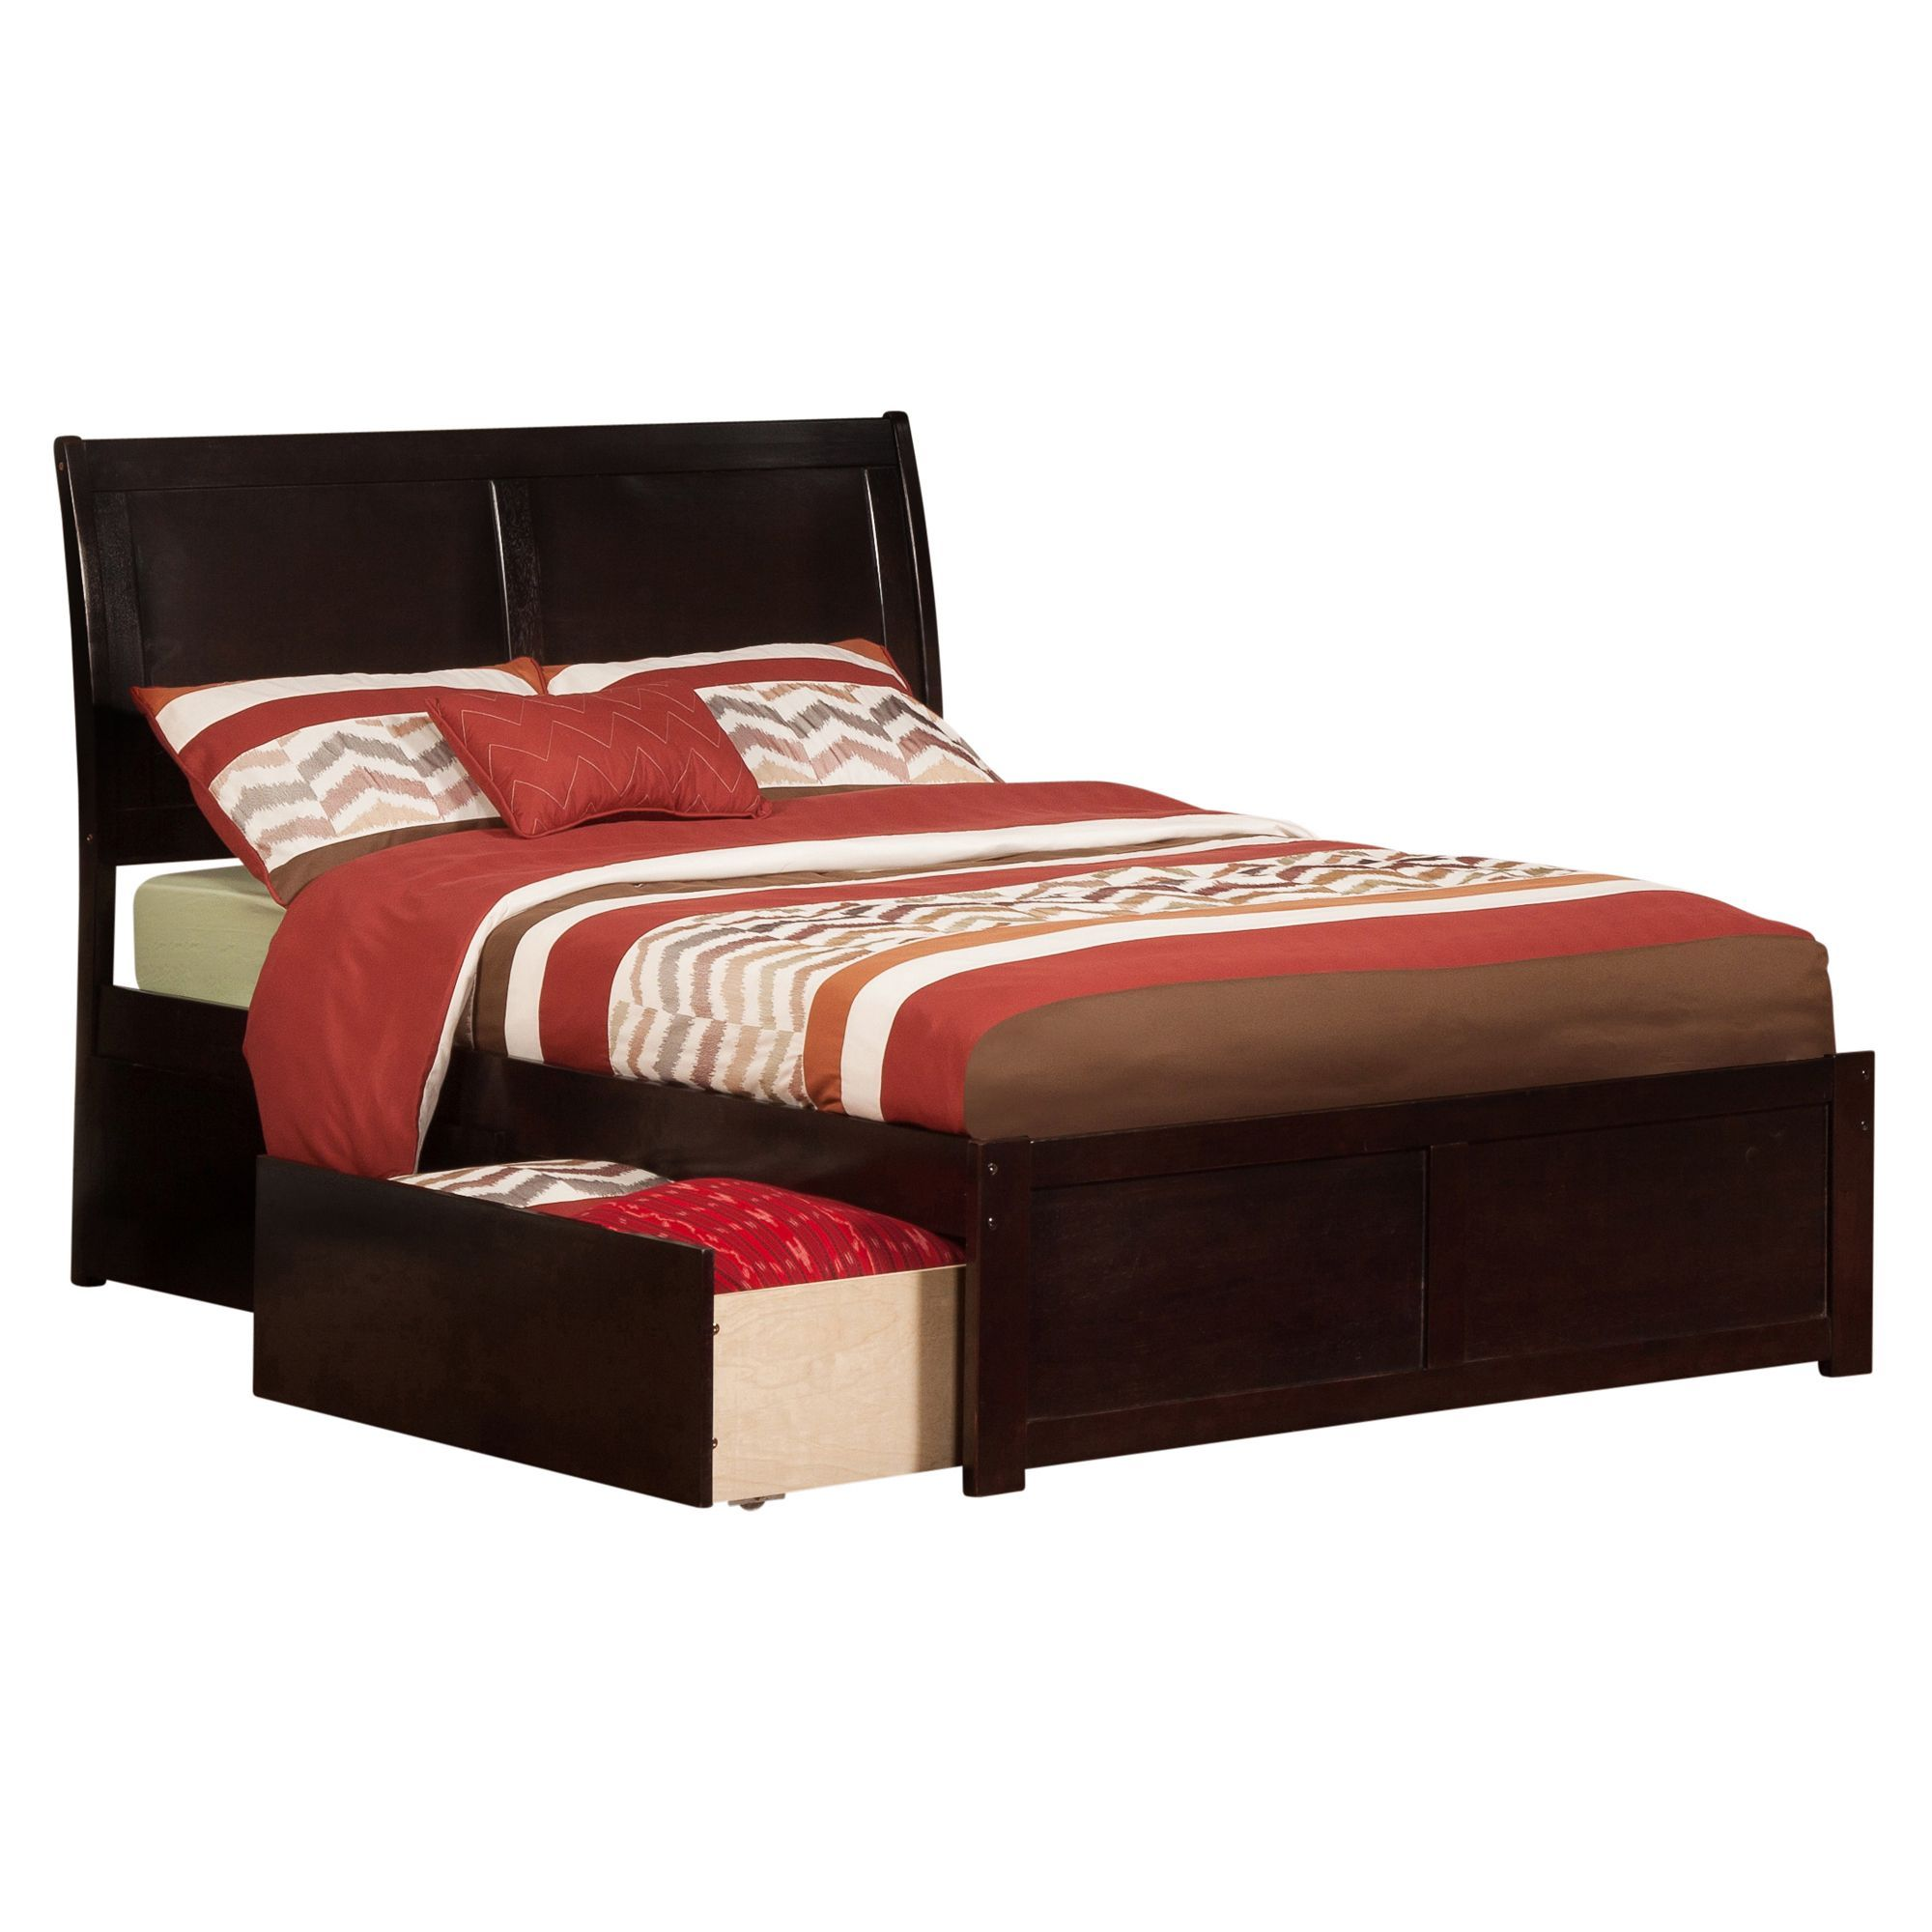 queen wooden bed with storage useful drawers bedroom size frame double frames awesome full and